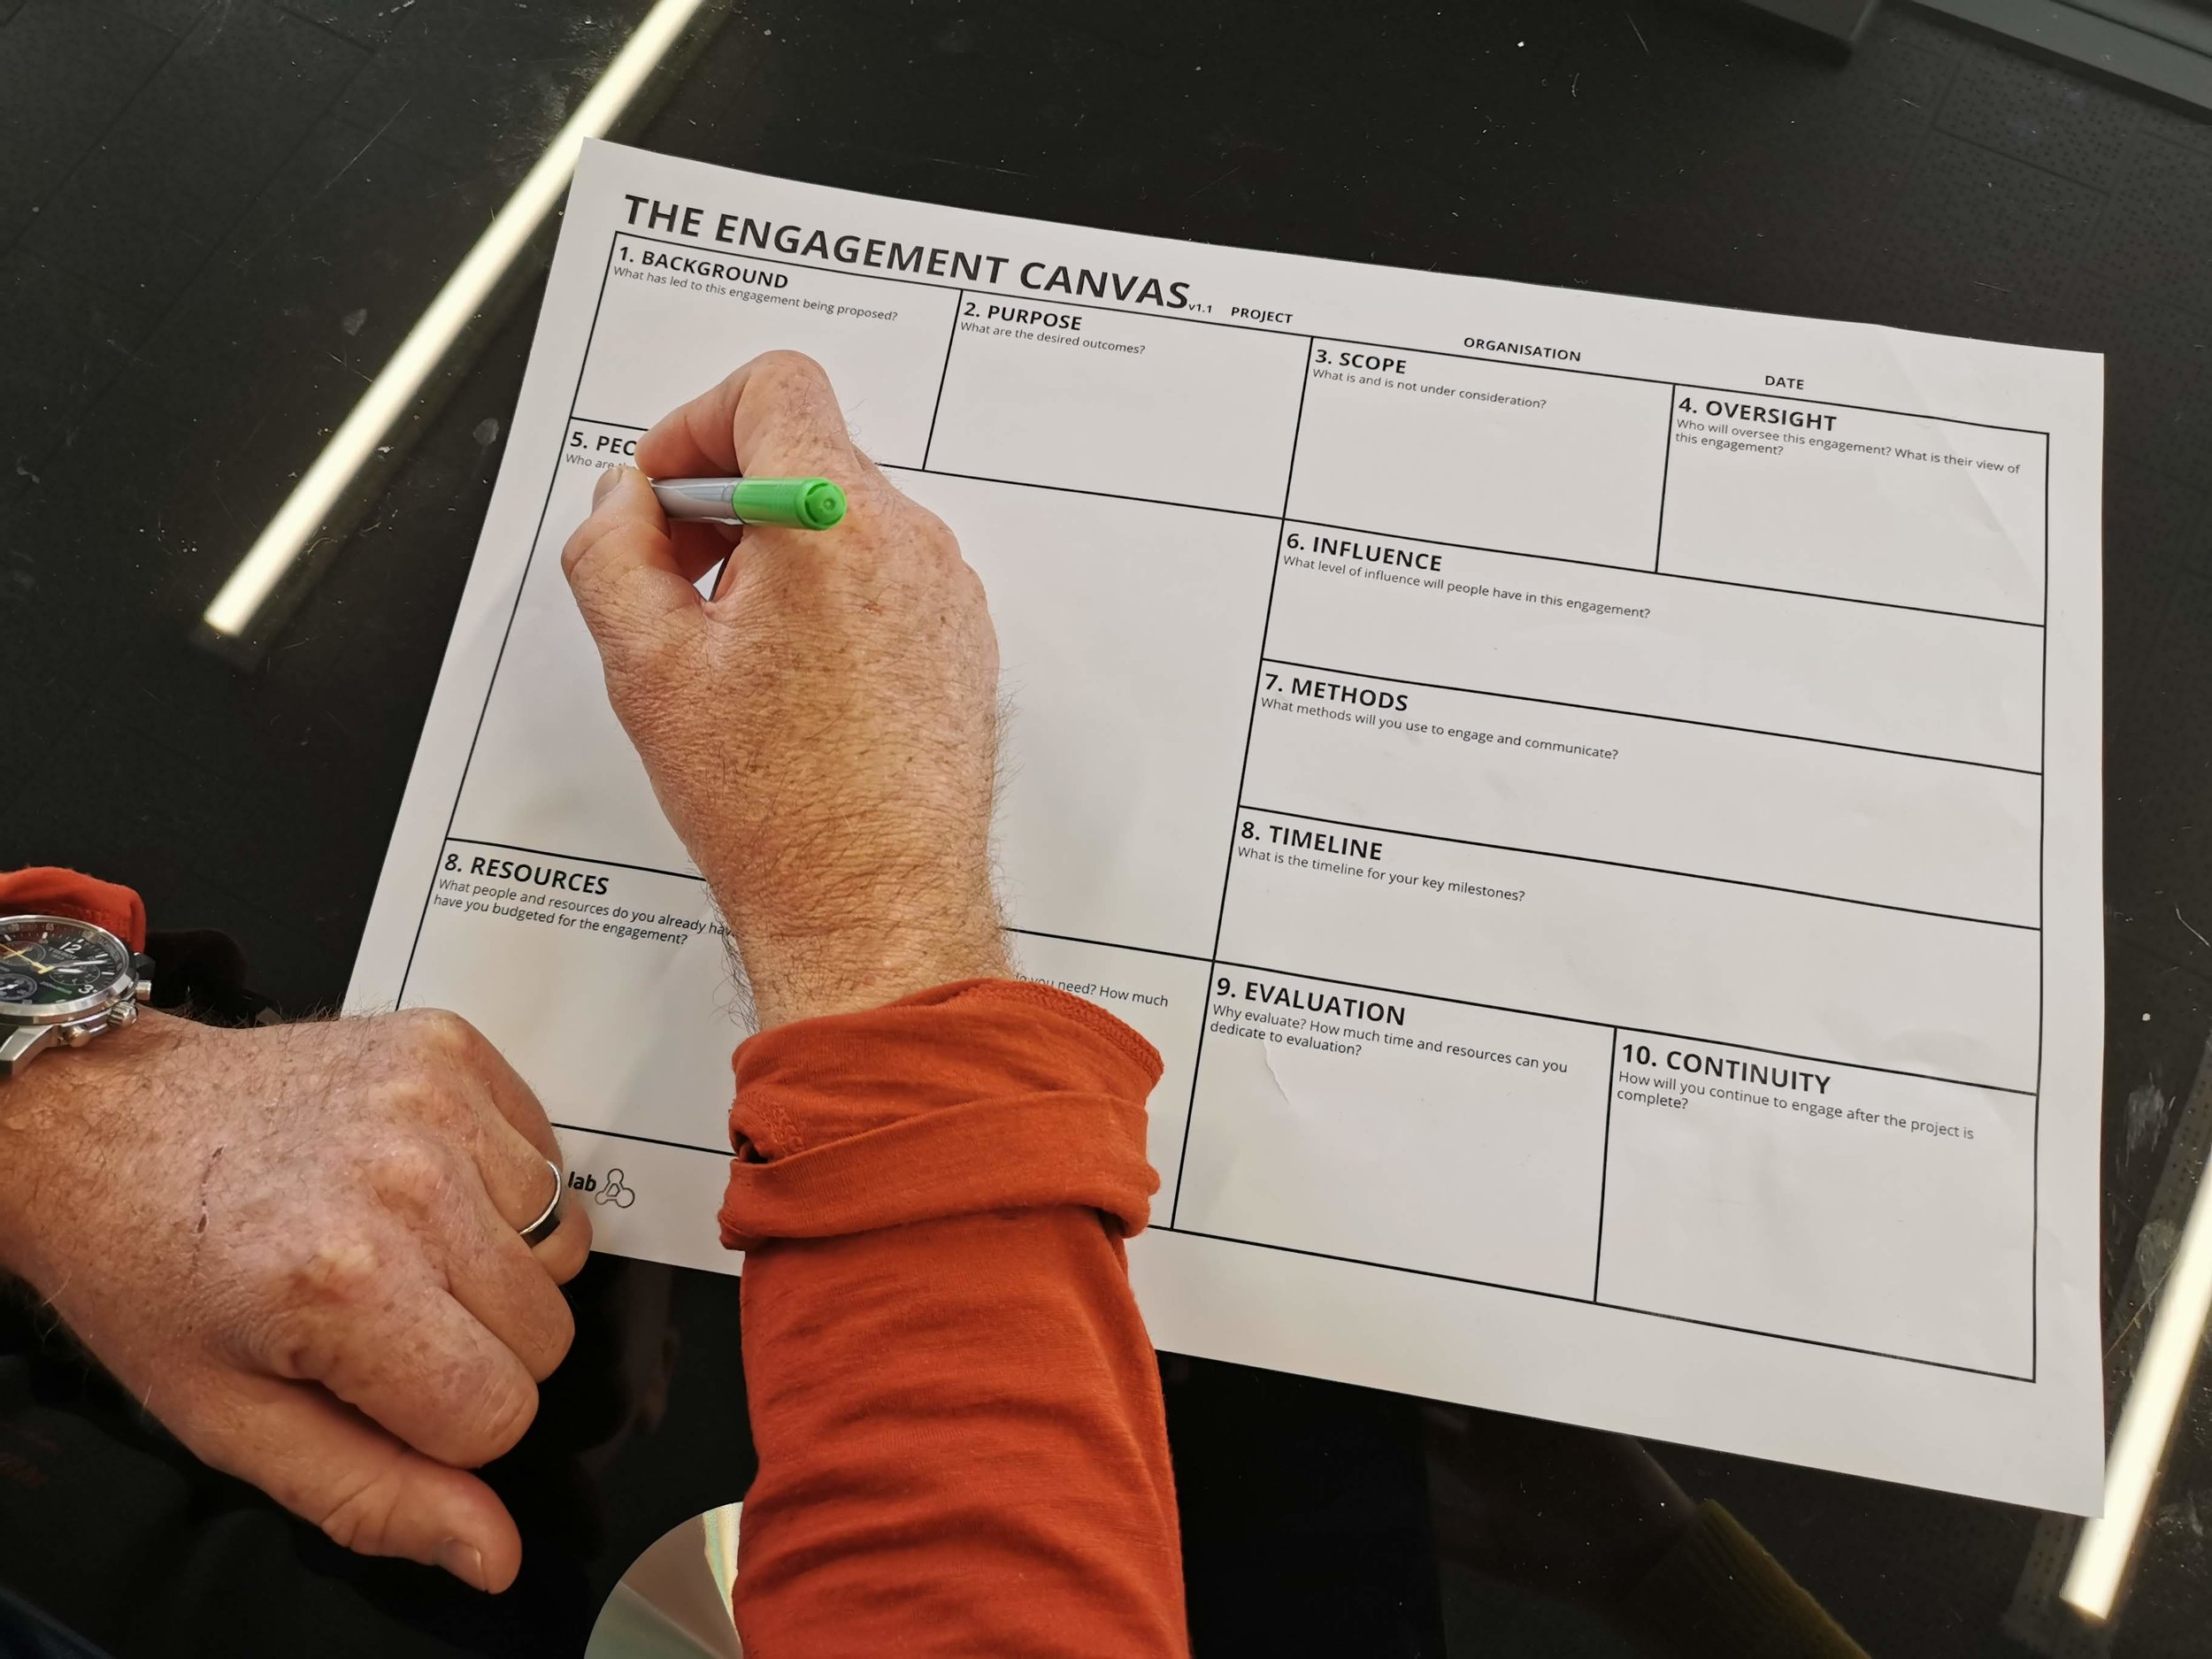 Engagement Canvas with hand